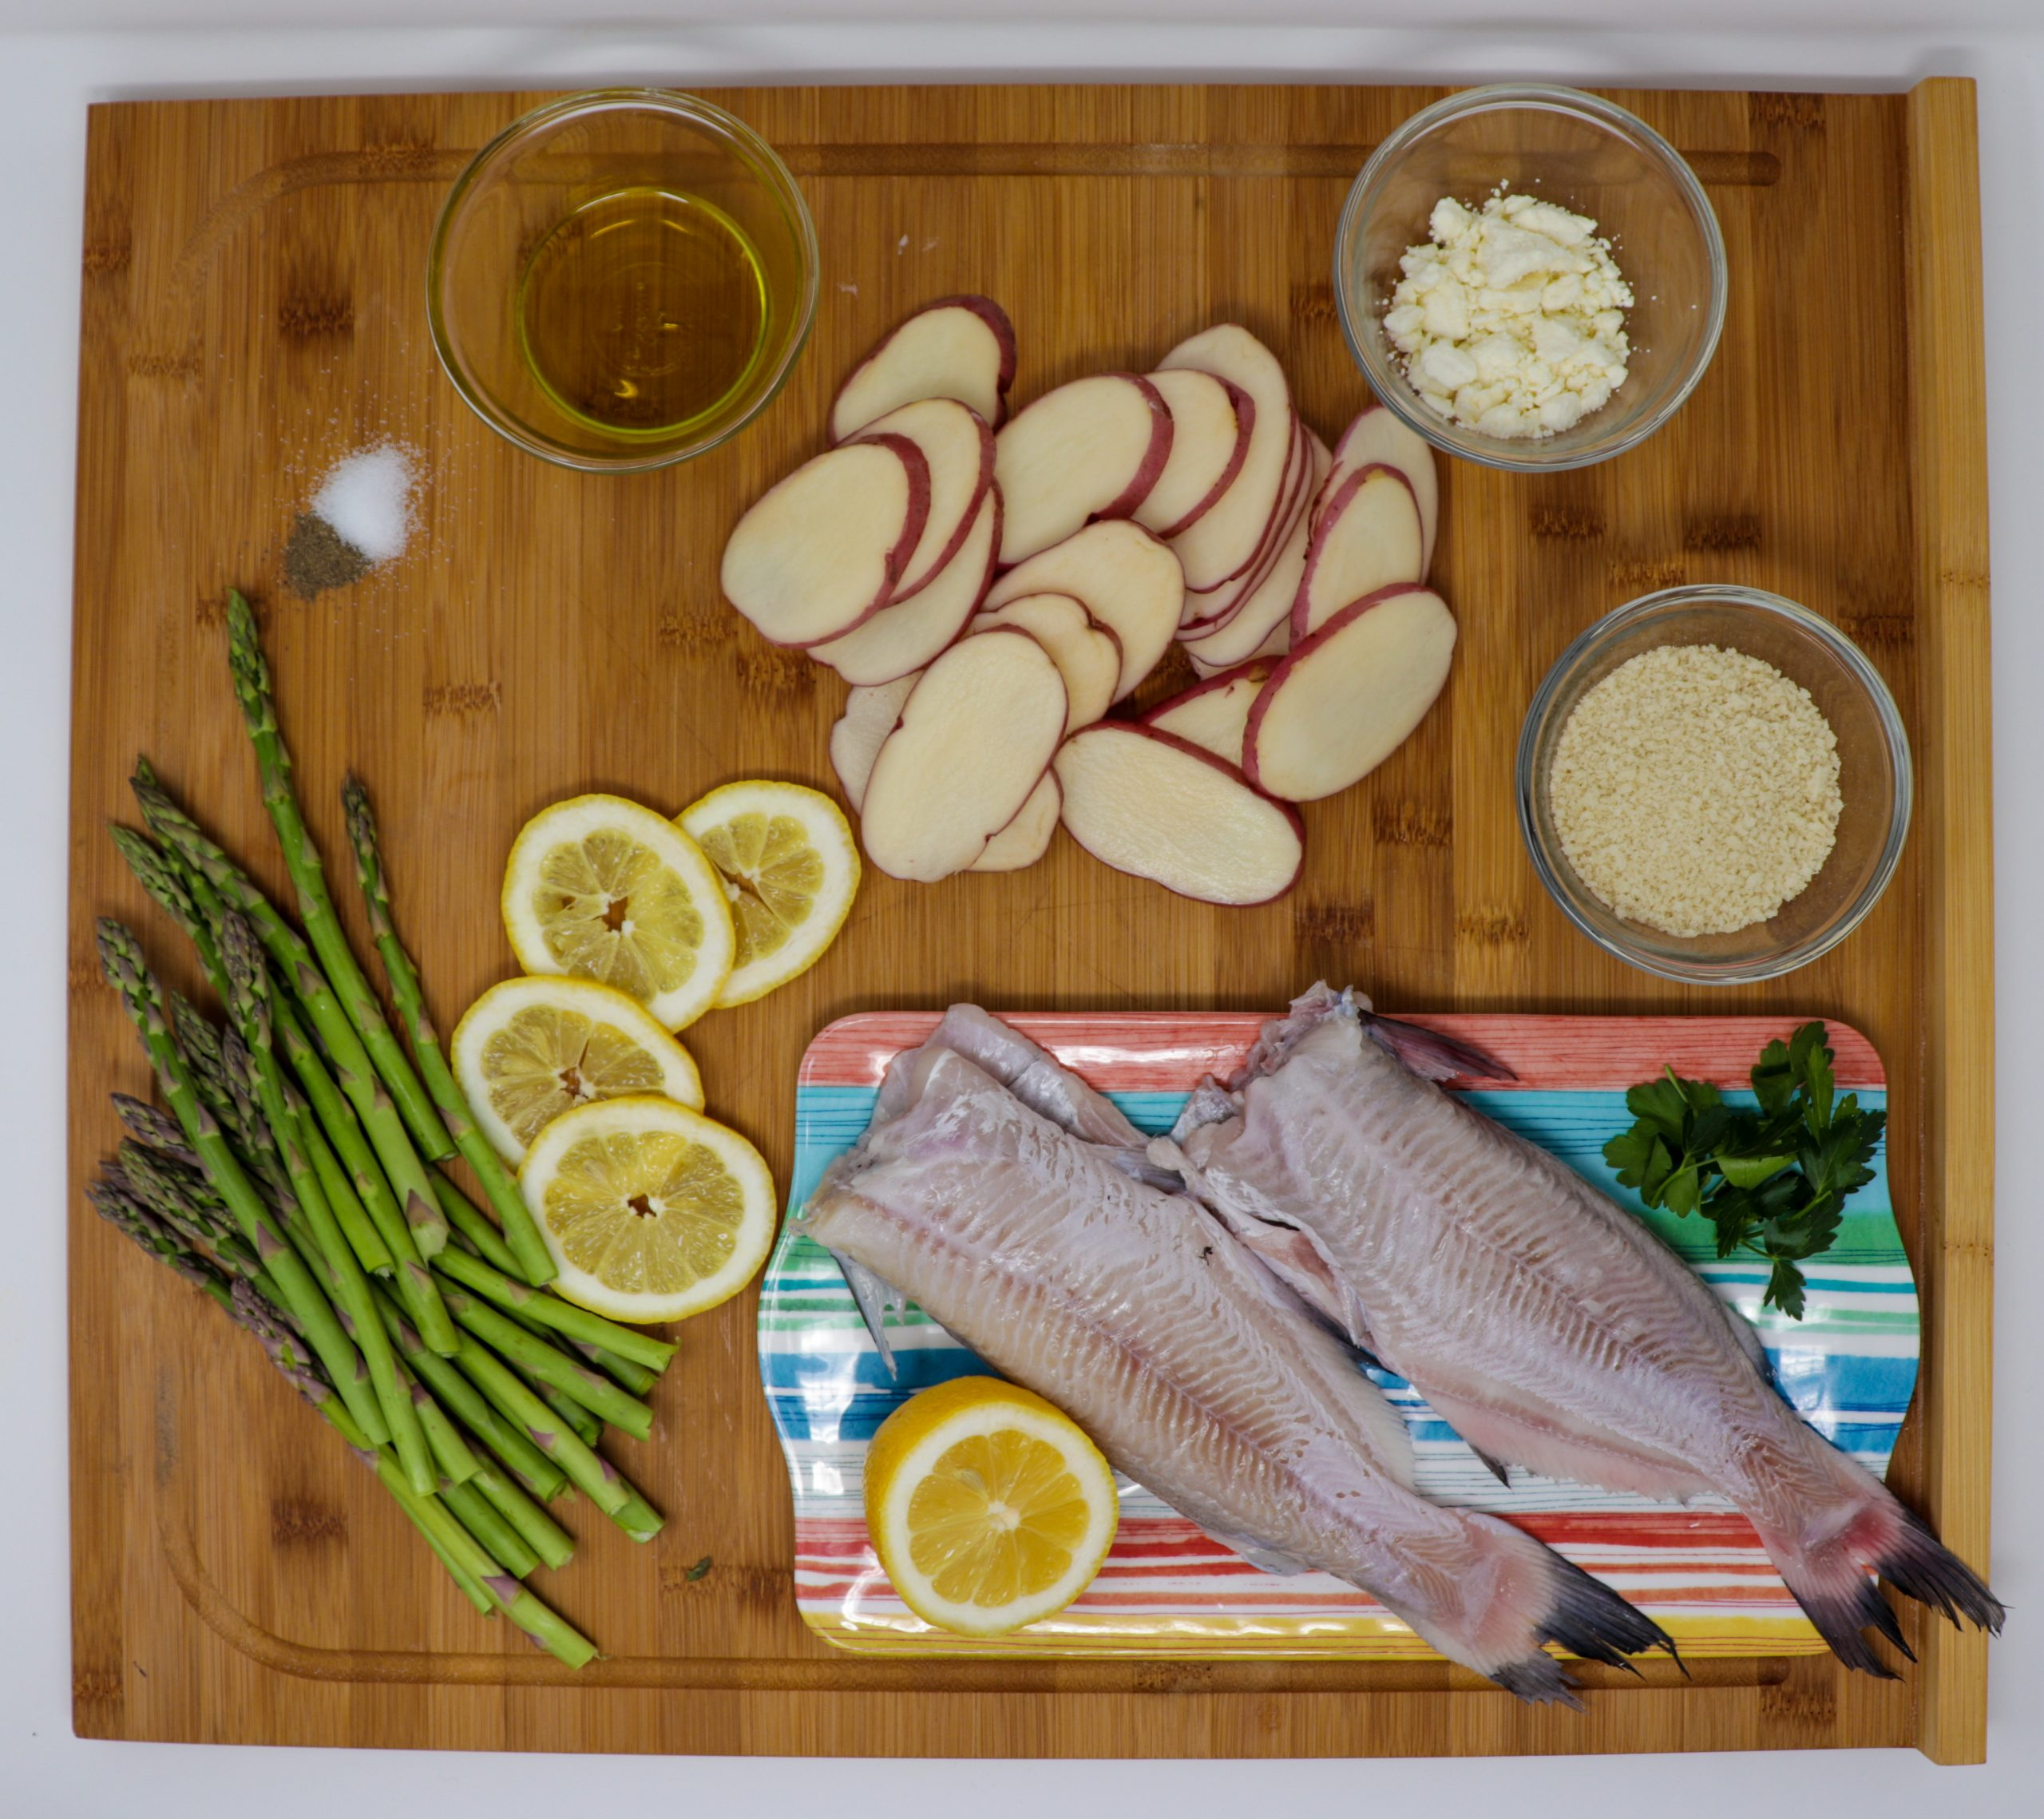 Baked catfish ingredients including whole fish, red potatoes, lemons, asparagus and garlic